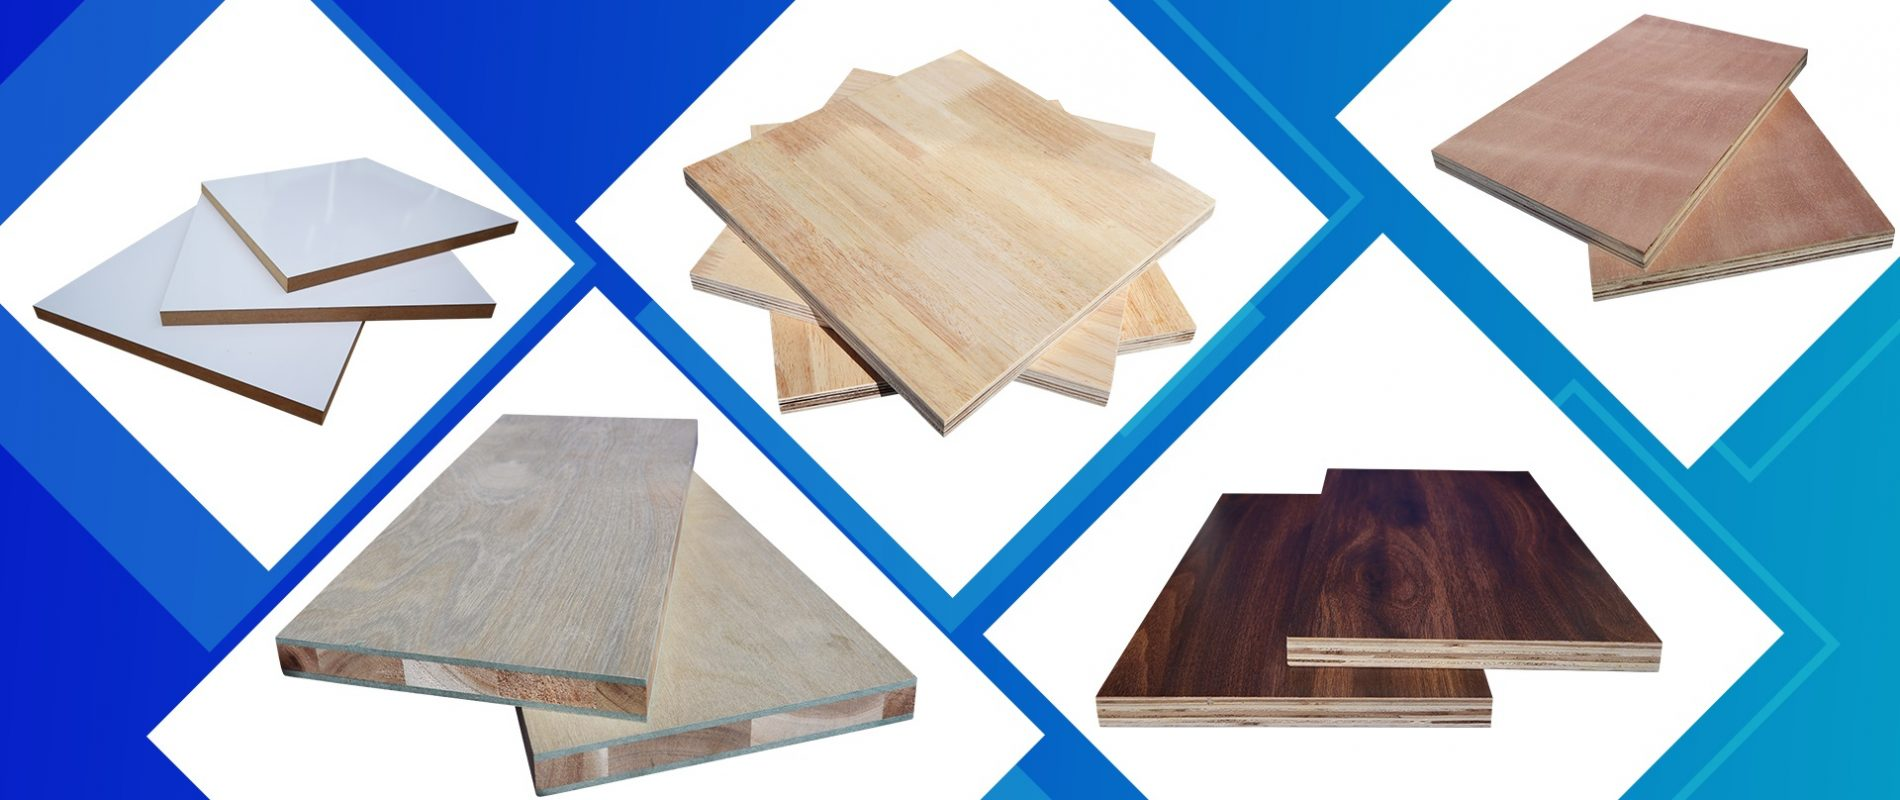 Rubberwood Acacia Eucalyptus Sapele Finger Joint Solid Wood Wood Board Wood Plank Wood Panel Wood Slab Lumber Timber Wood Industry International Wood Products Supplier FSC Certified Import Export